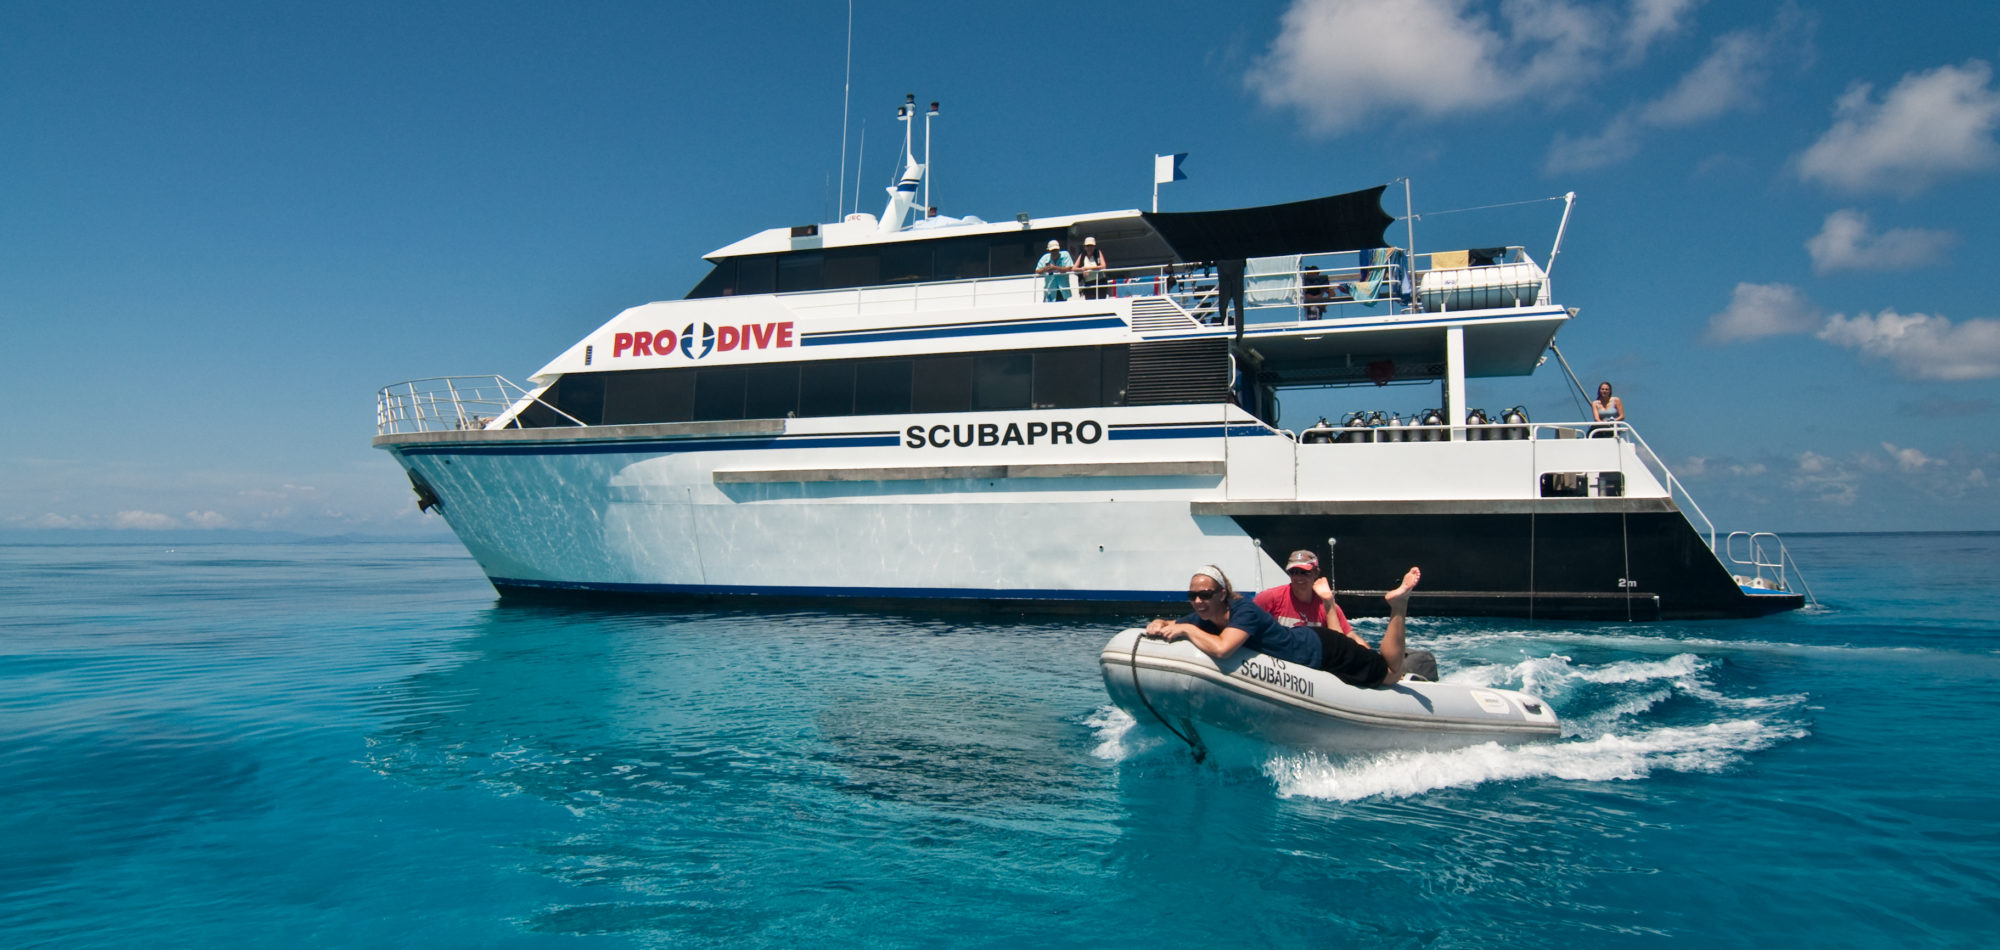 Cairns, learn to scuba dive - Pro Dive dive boat